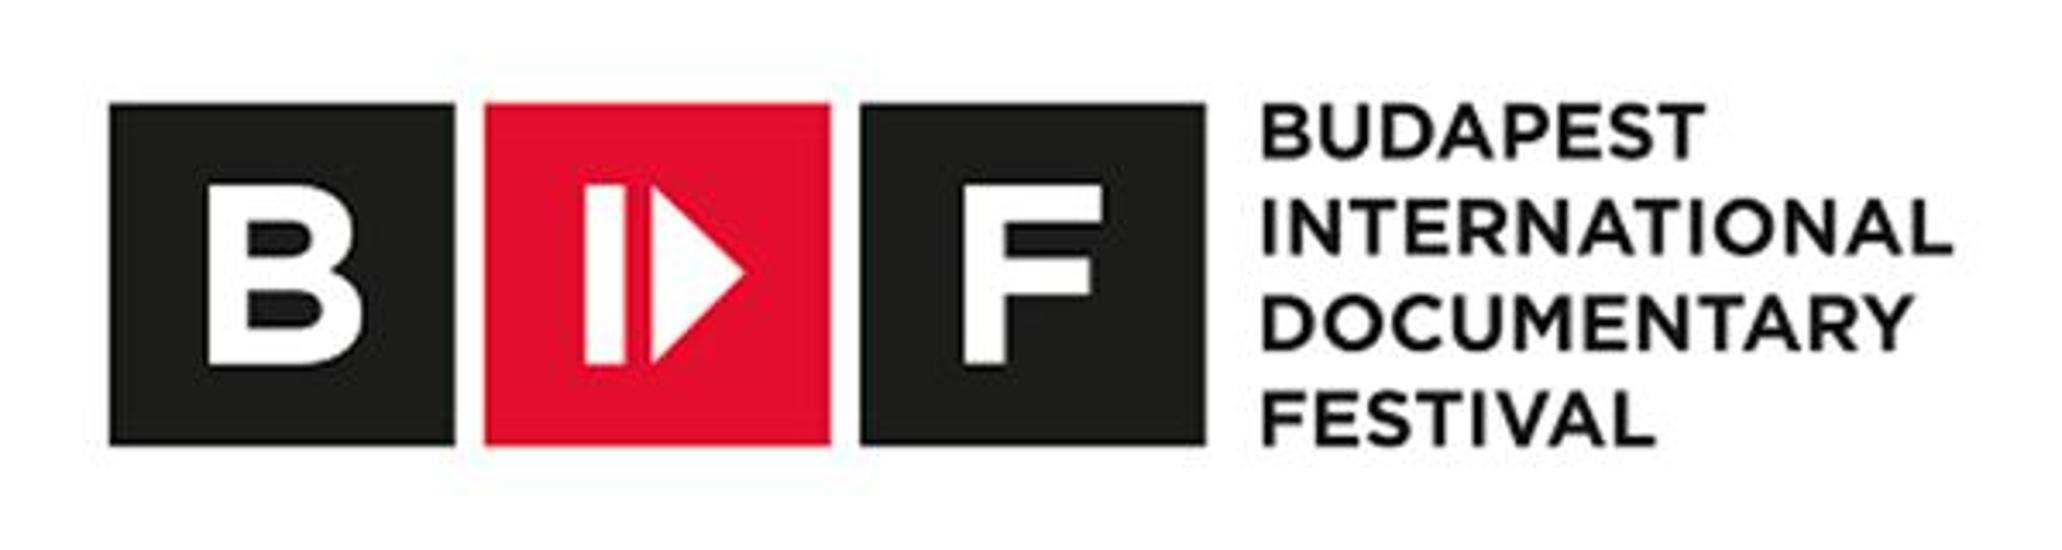 'Budapest International Documentary Festival', 24 – 28 January